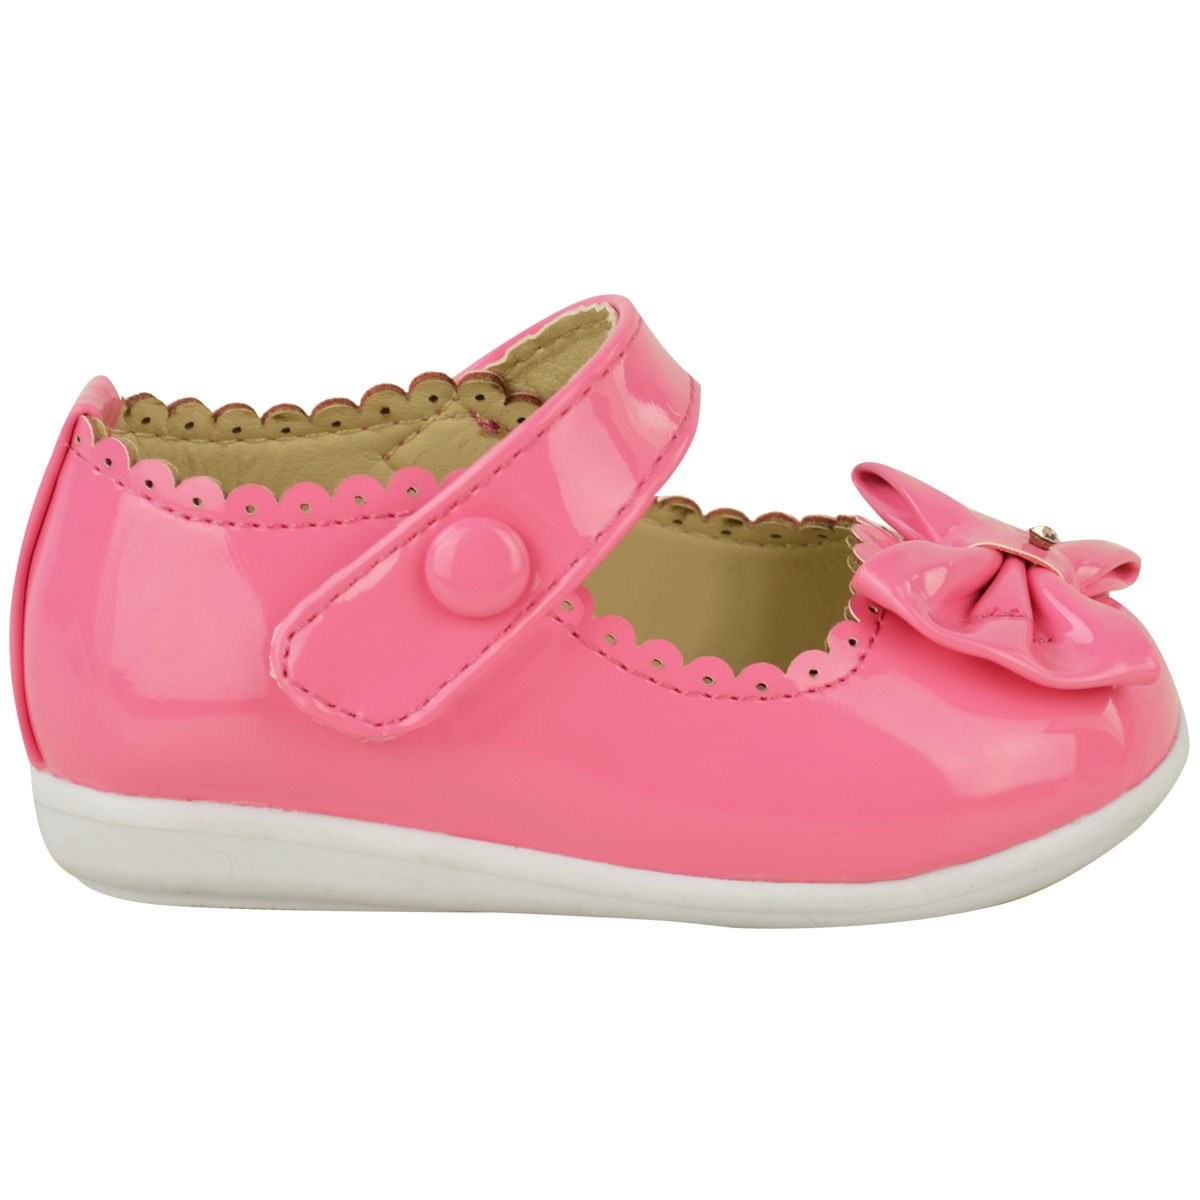 Fashion Thirsty Baby Girls Kids Childrens Patent Bow Pram Wedding  Christening Party Shoes Size: Amazon.co.uk: Shoes & Bags